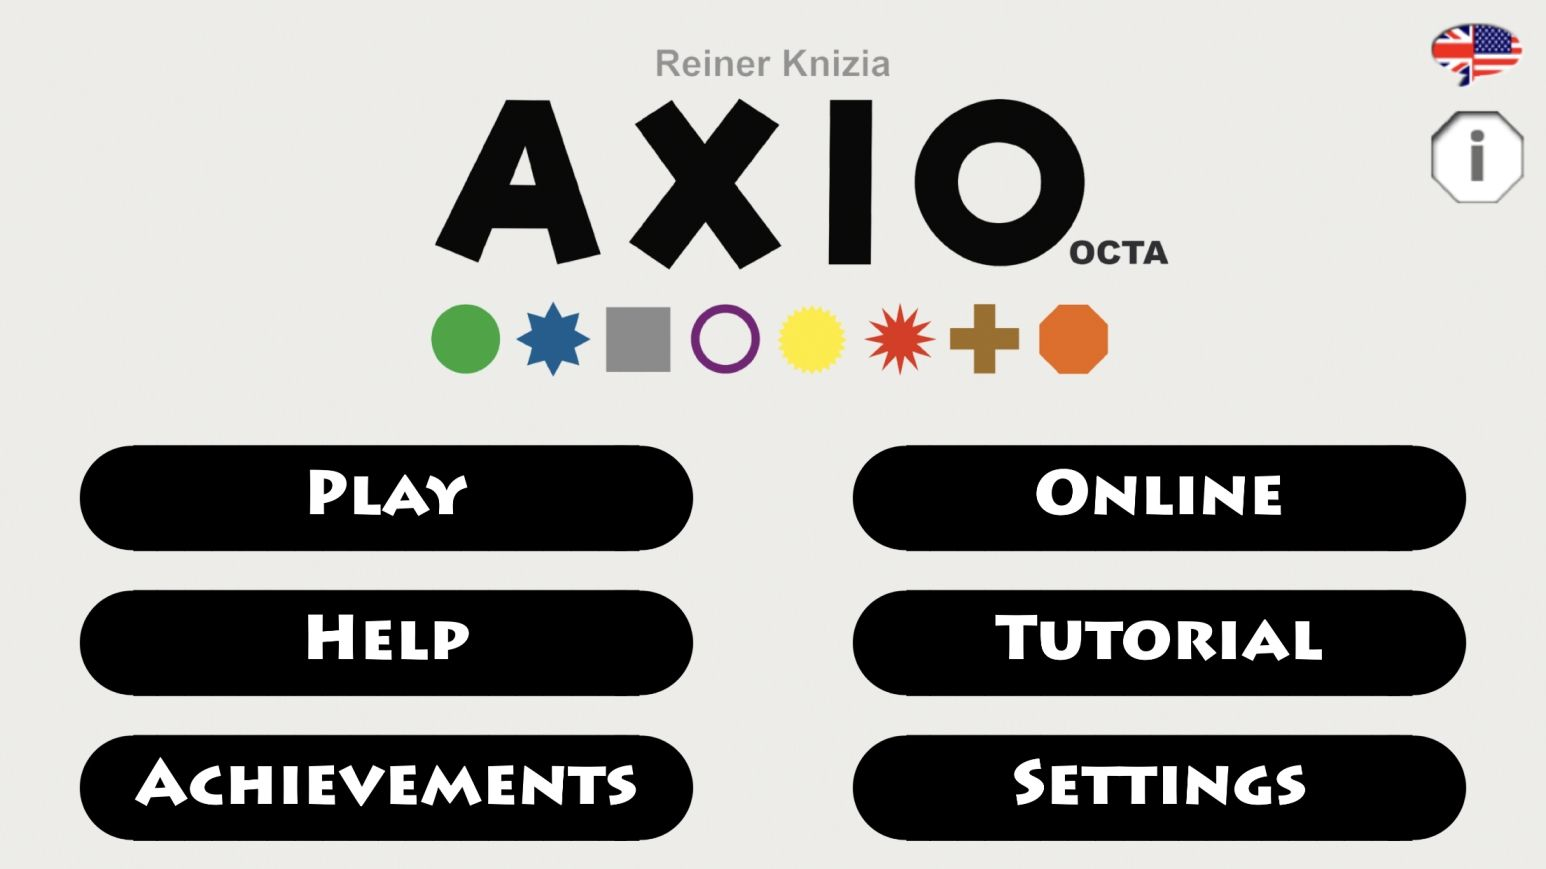 AXIO octa (copie d'écran 1 sur iPhone / iPad)